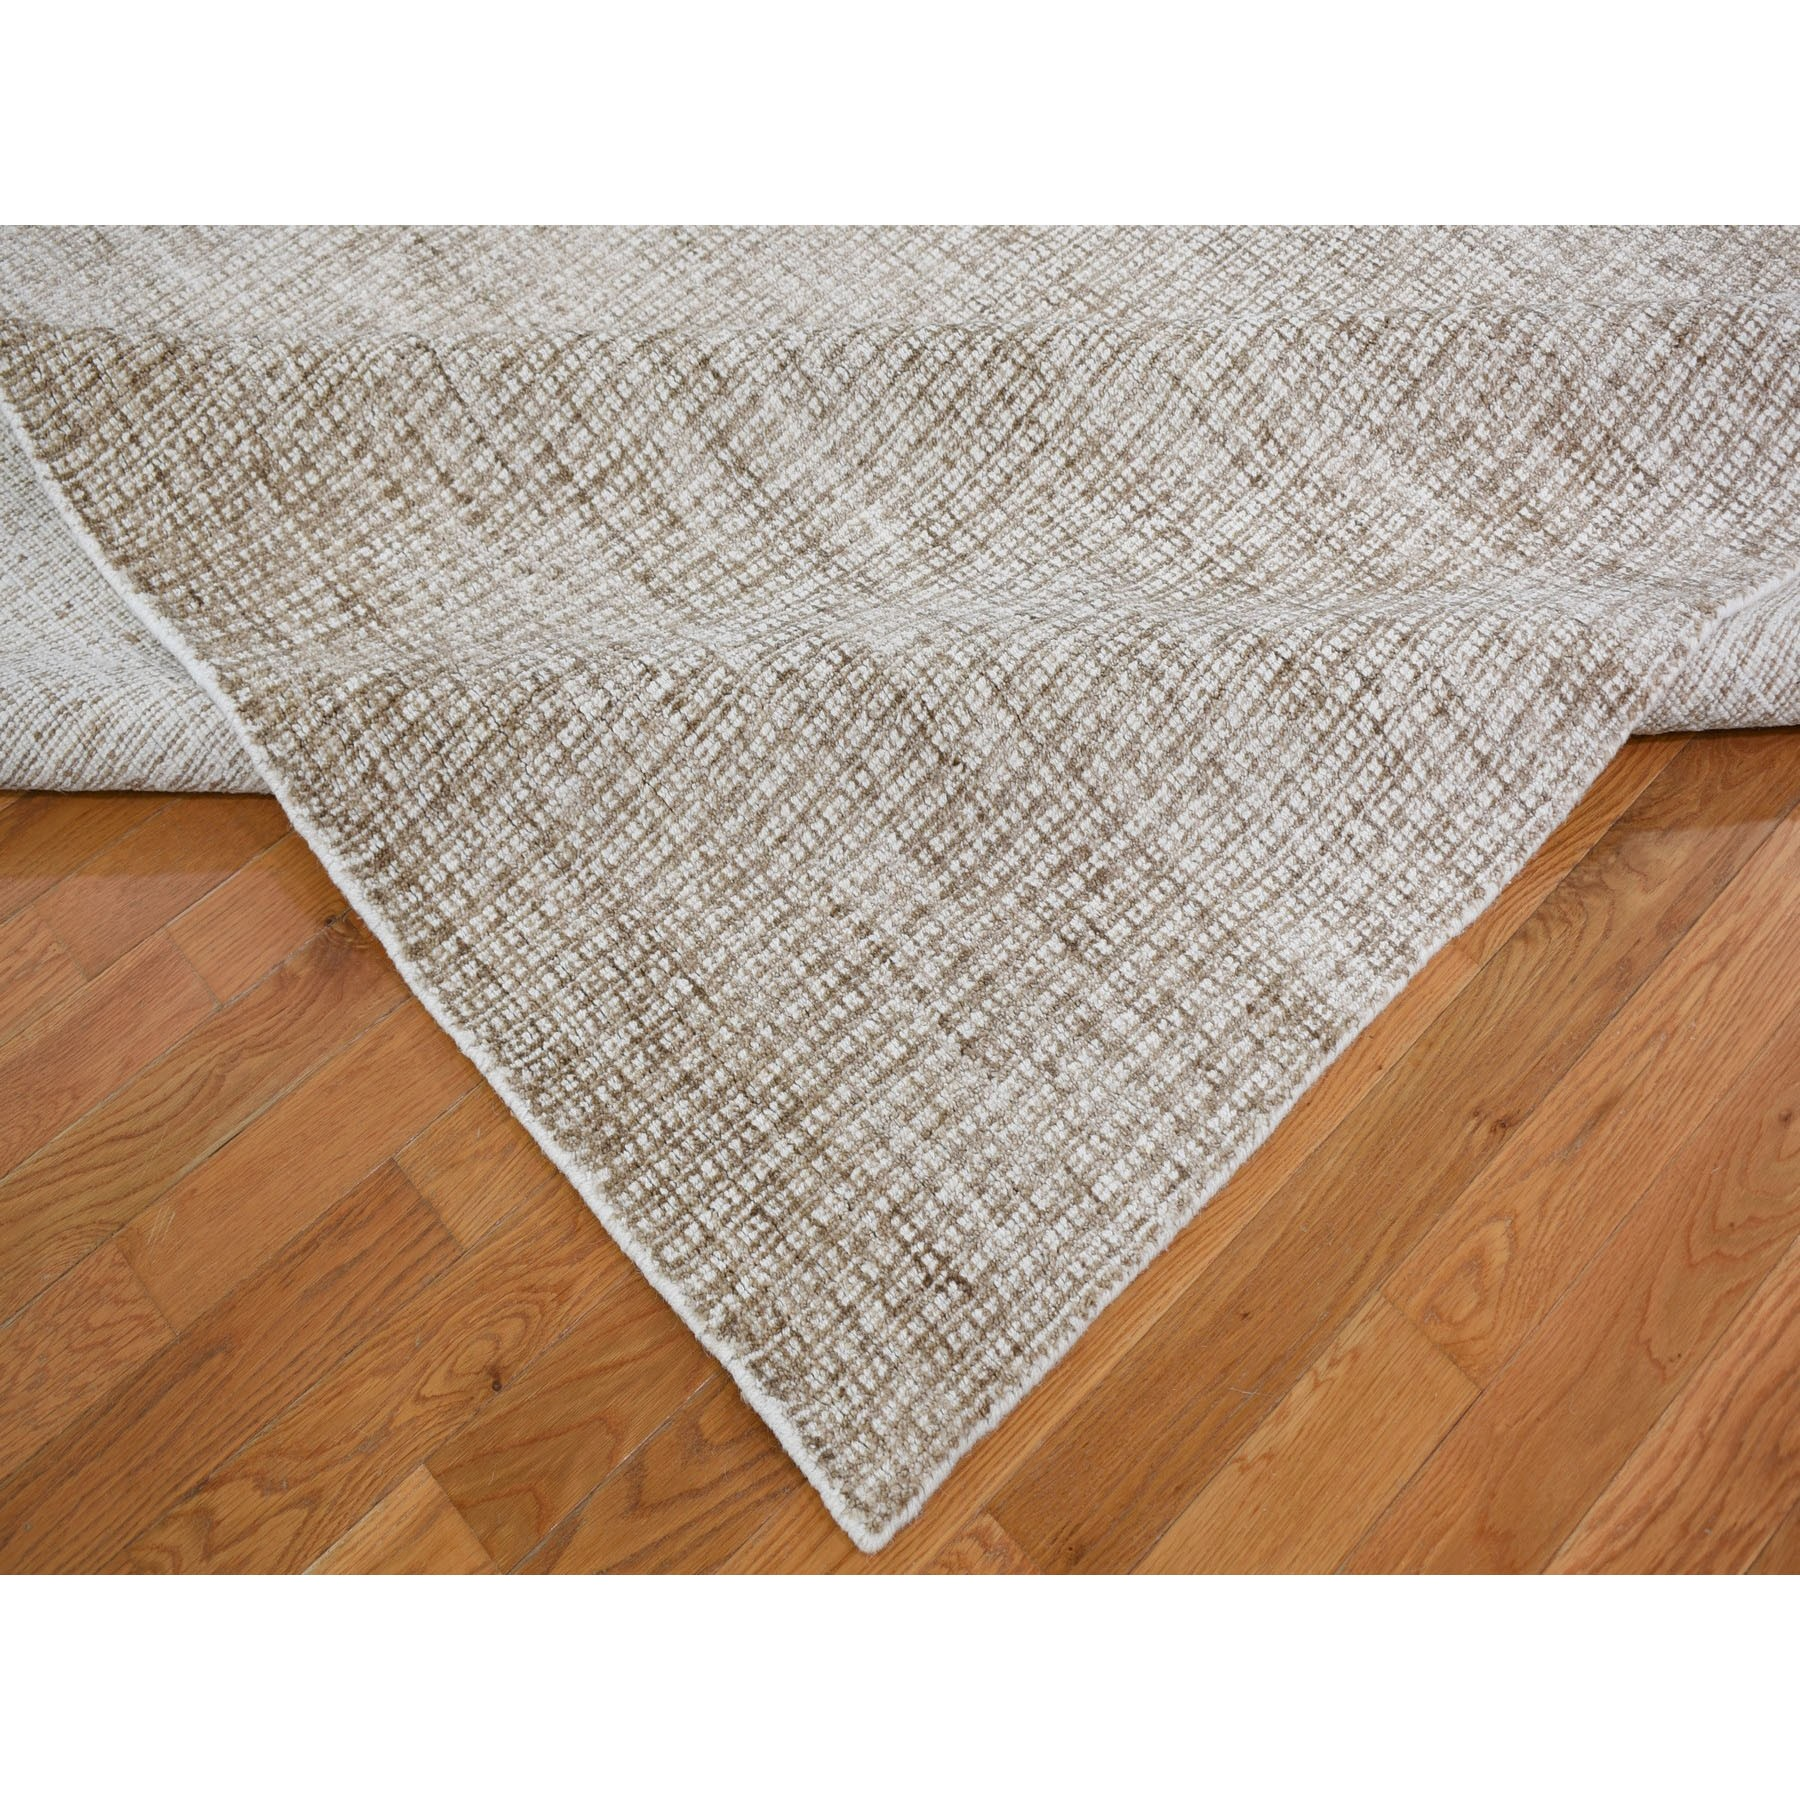 "9'2""x12'1"" Brown Wool And Silk Modern Hand Loomed Oriental Rug"